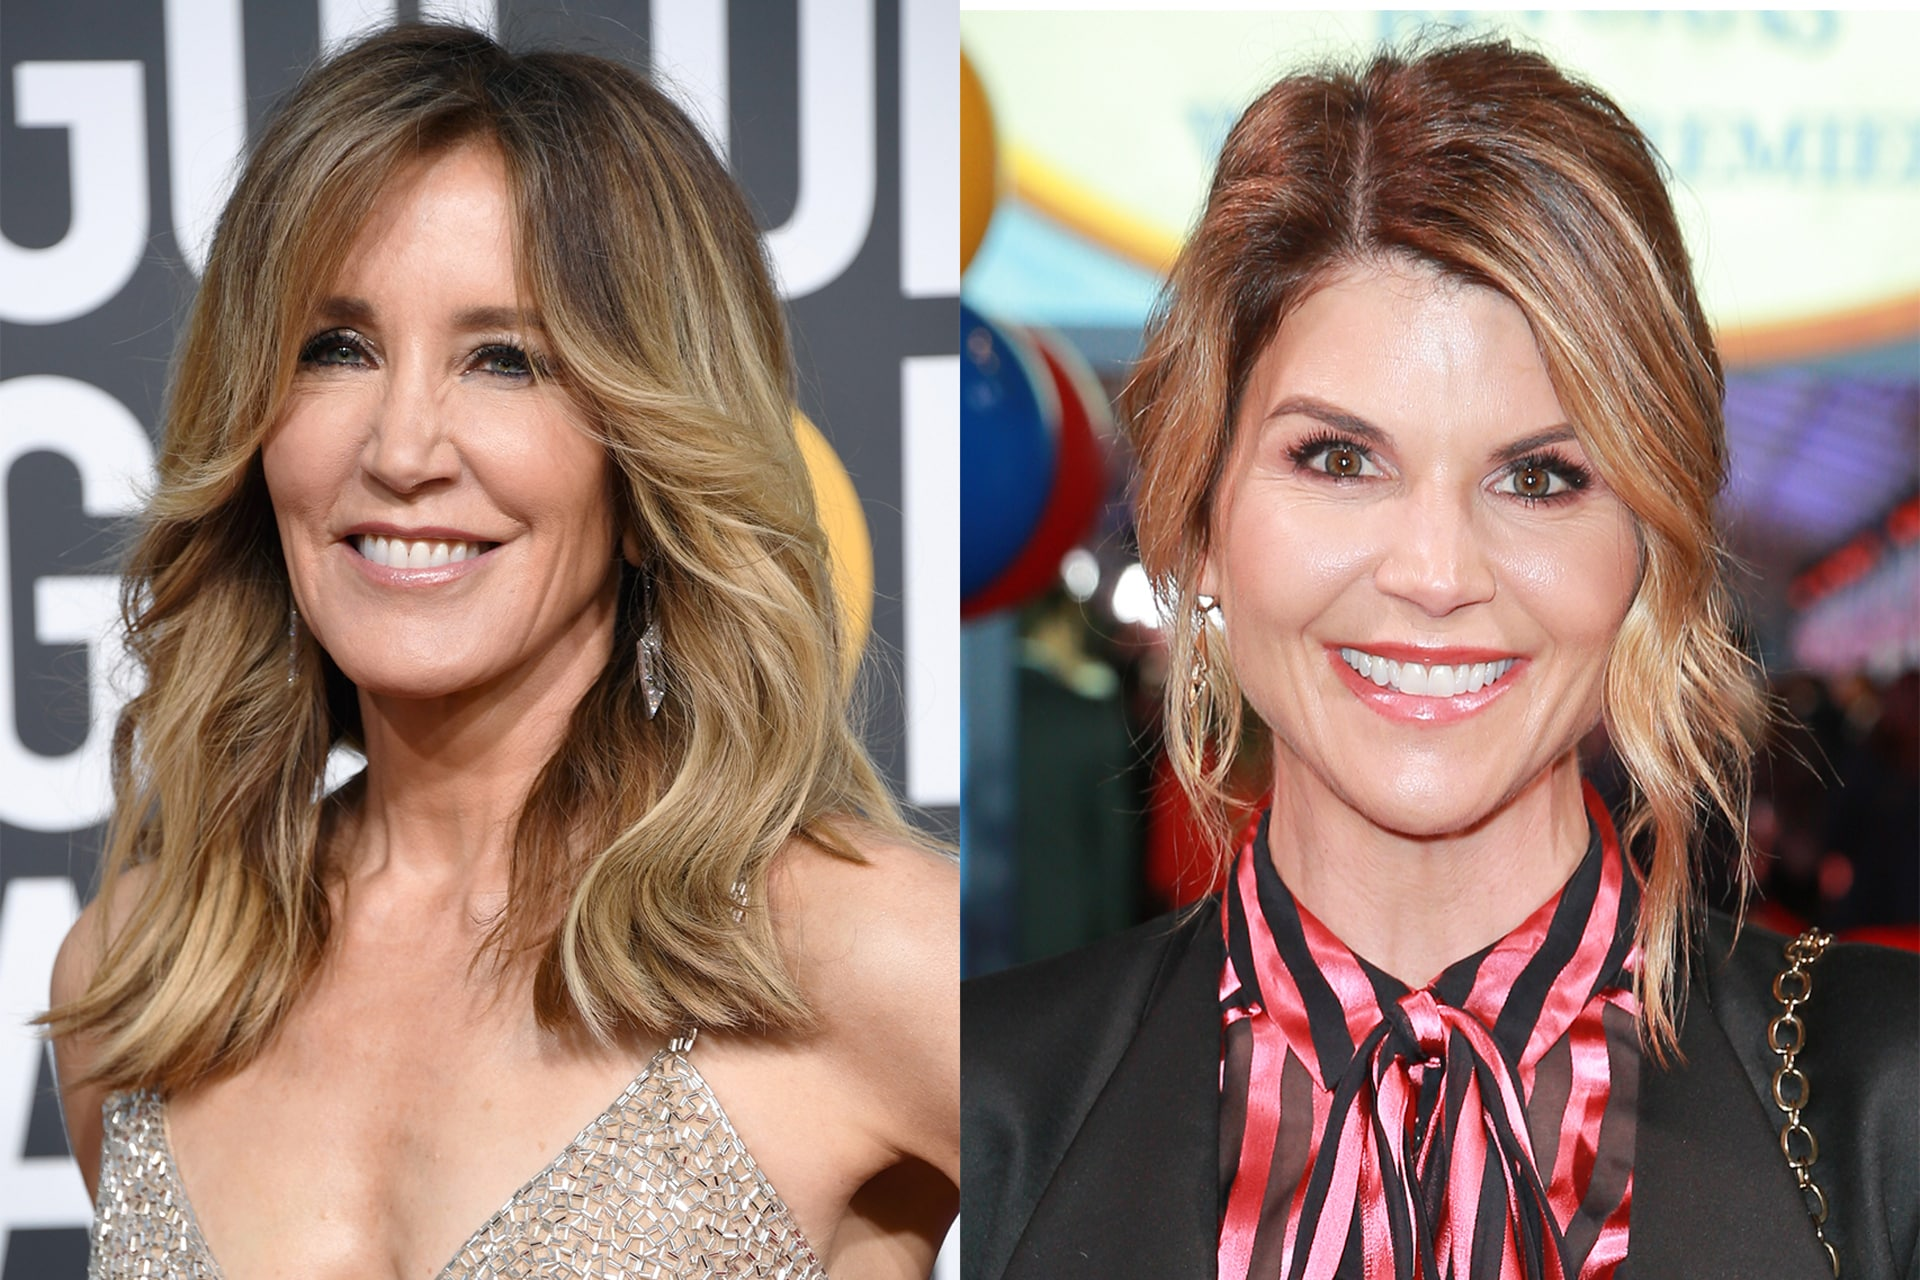 Everything to know about the college admissions scam involving Lori Loughlin and Felicity Huffman